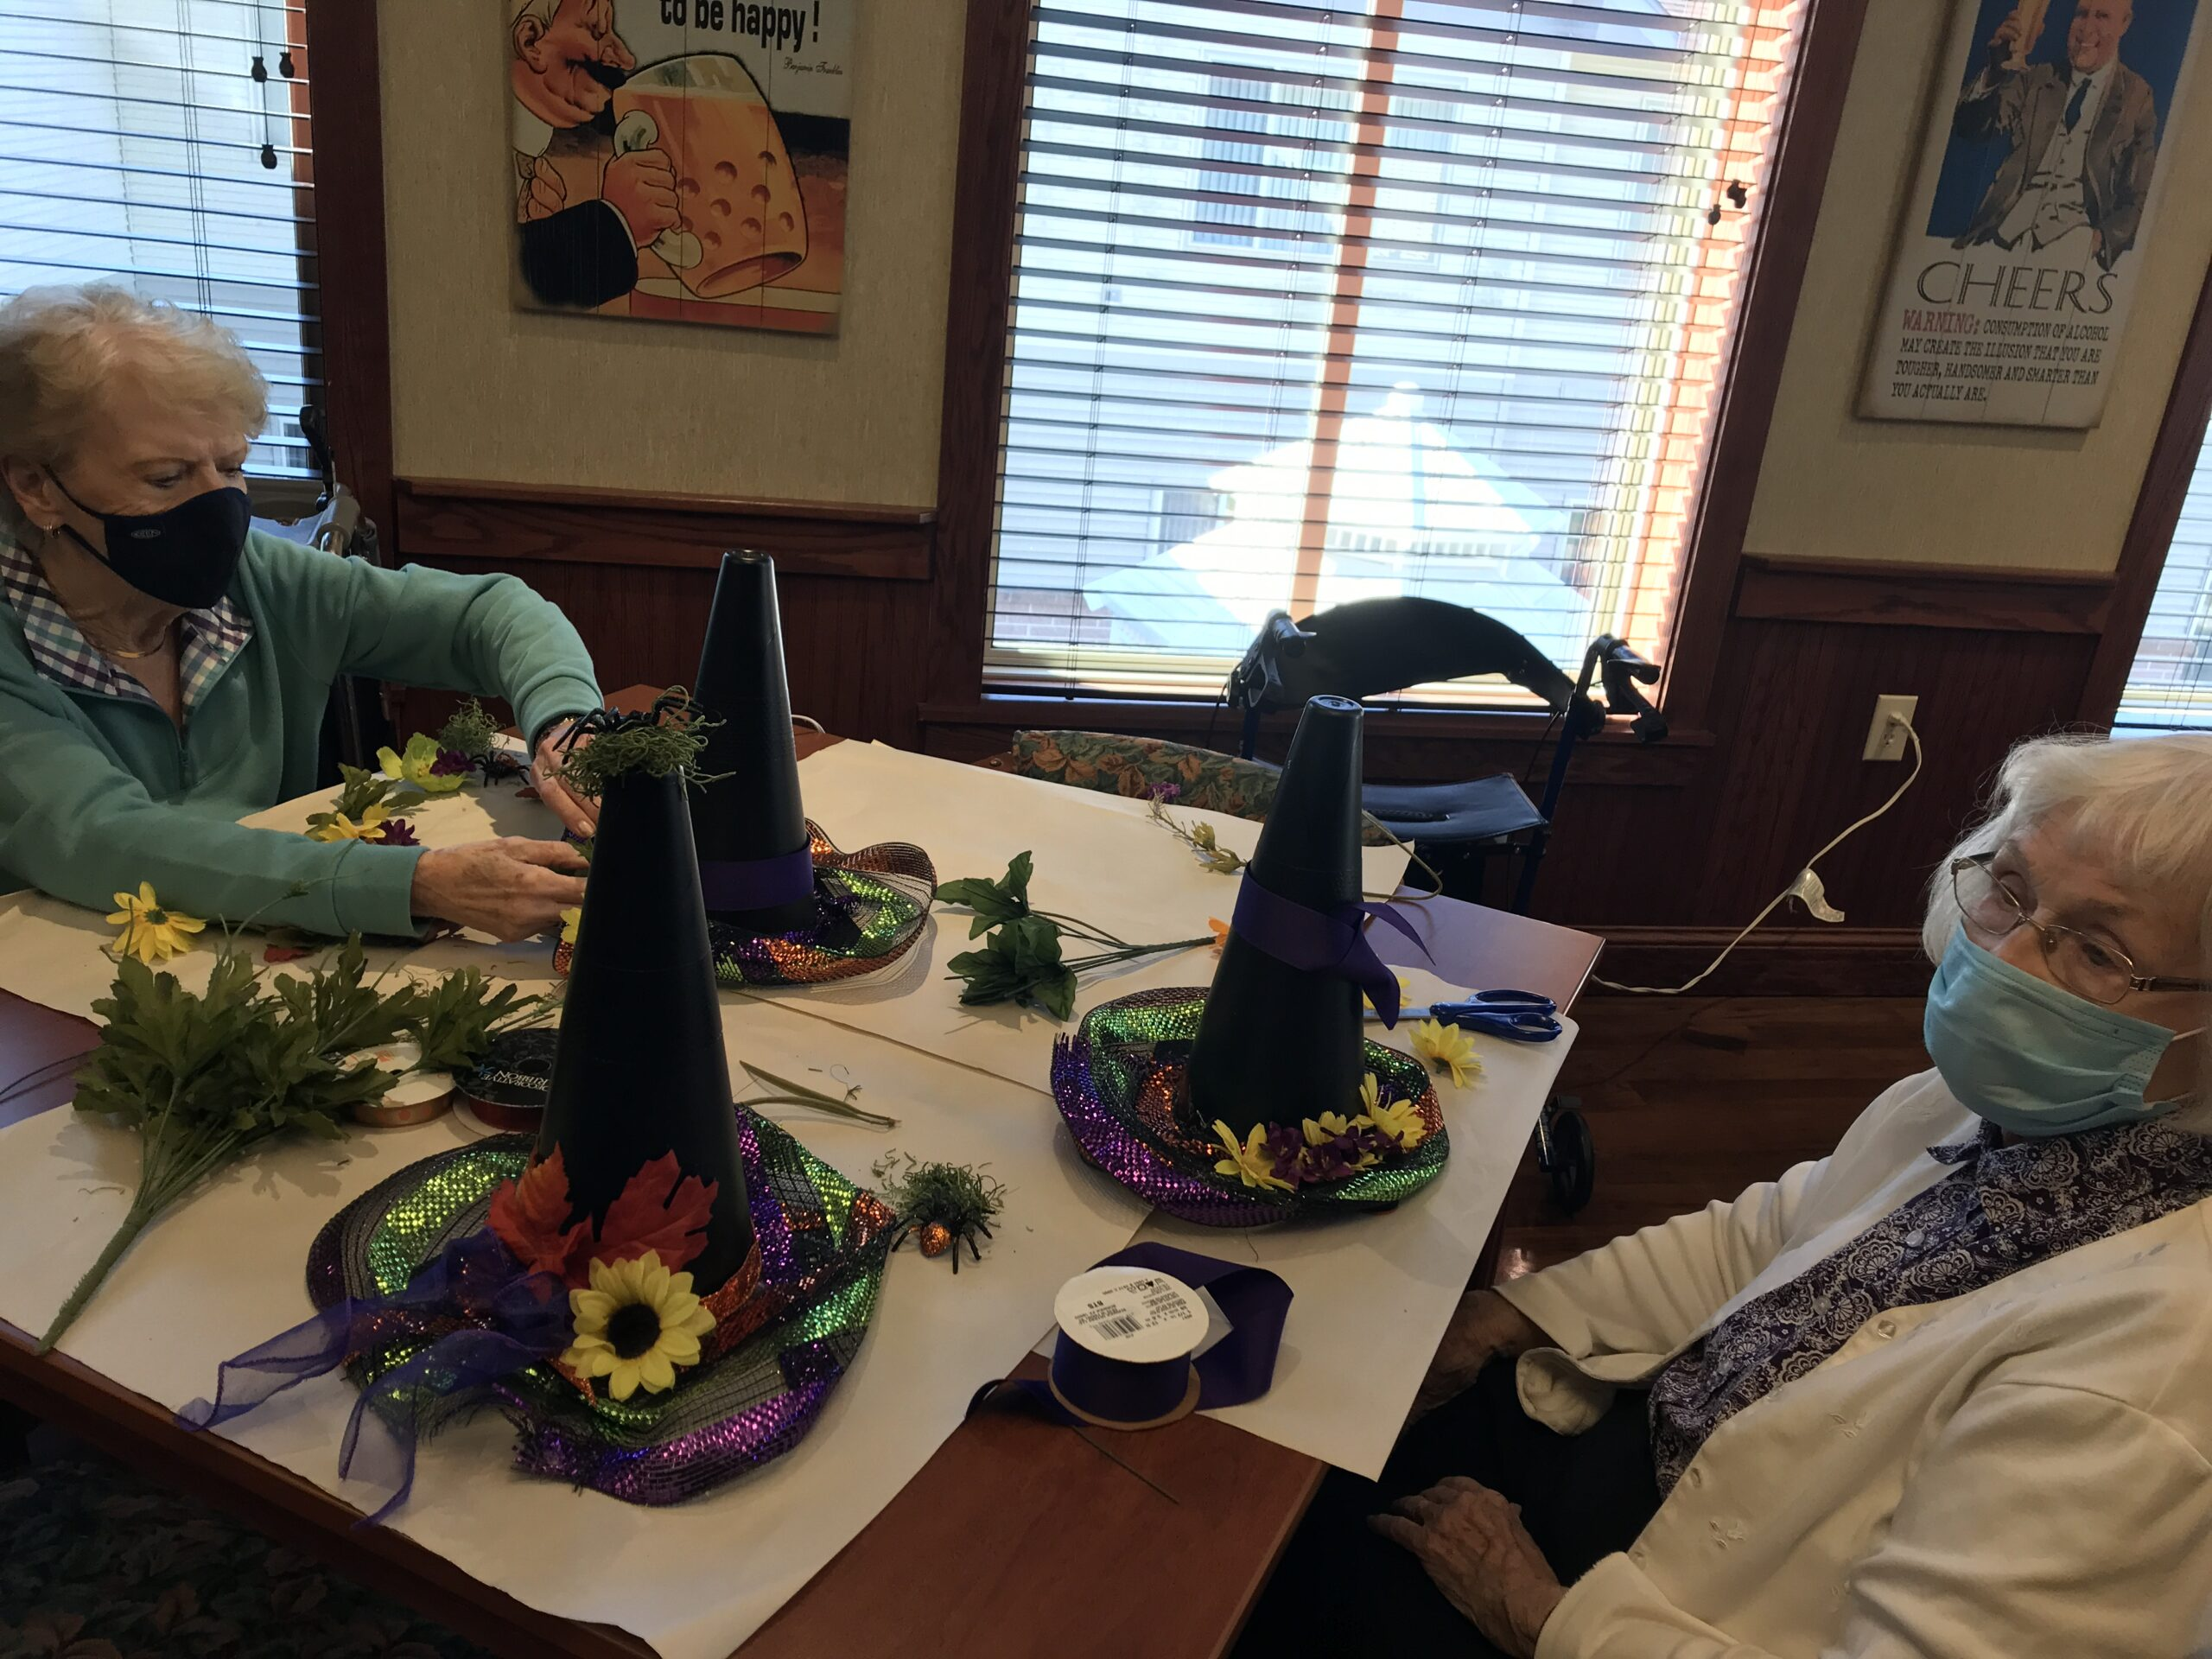 Mansfield, Ohio making a Halloween/ fall craft